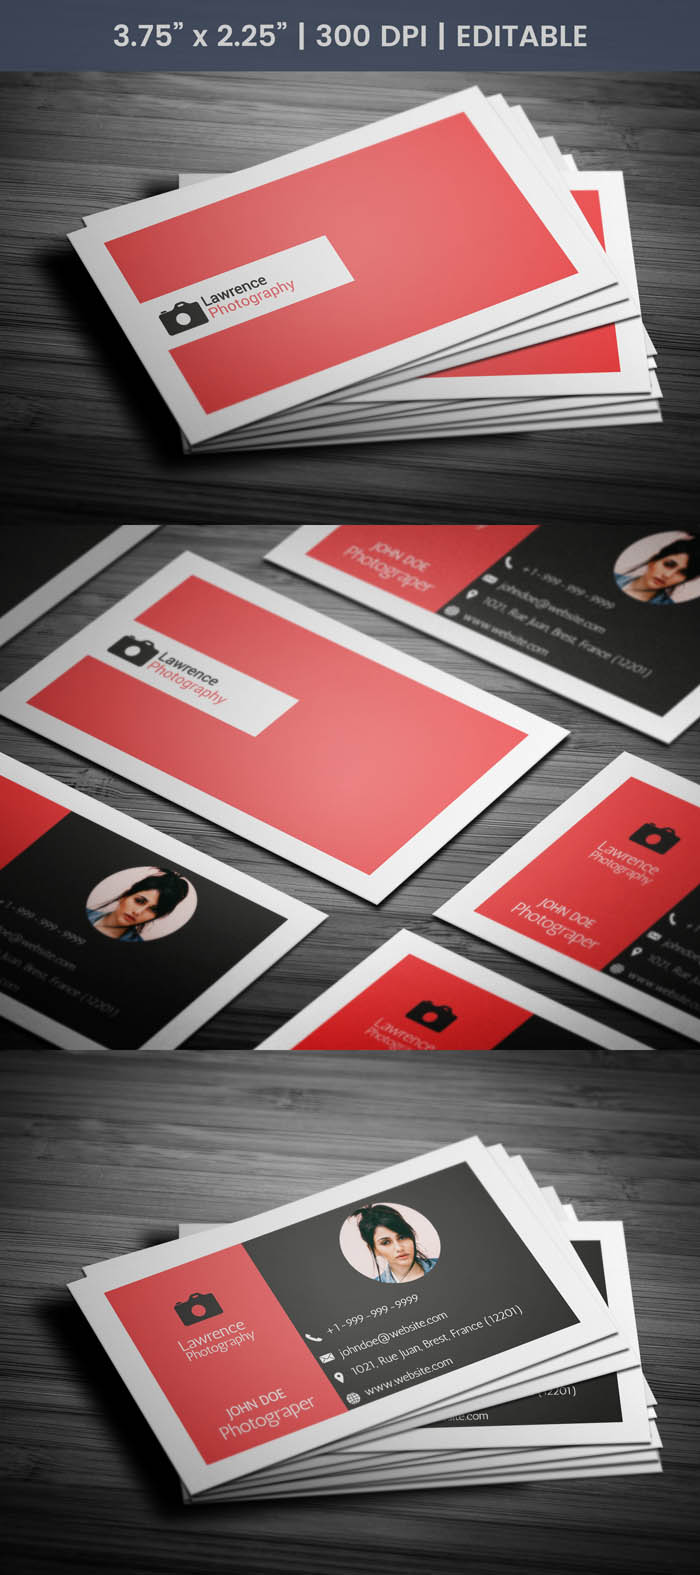 Real Estate Photography Business Card - Full Preview